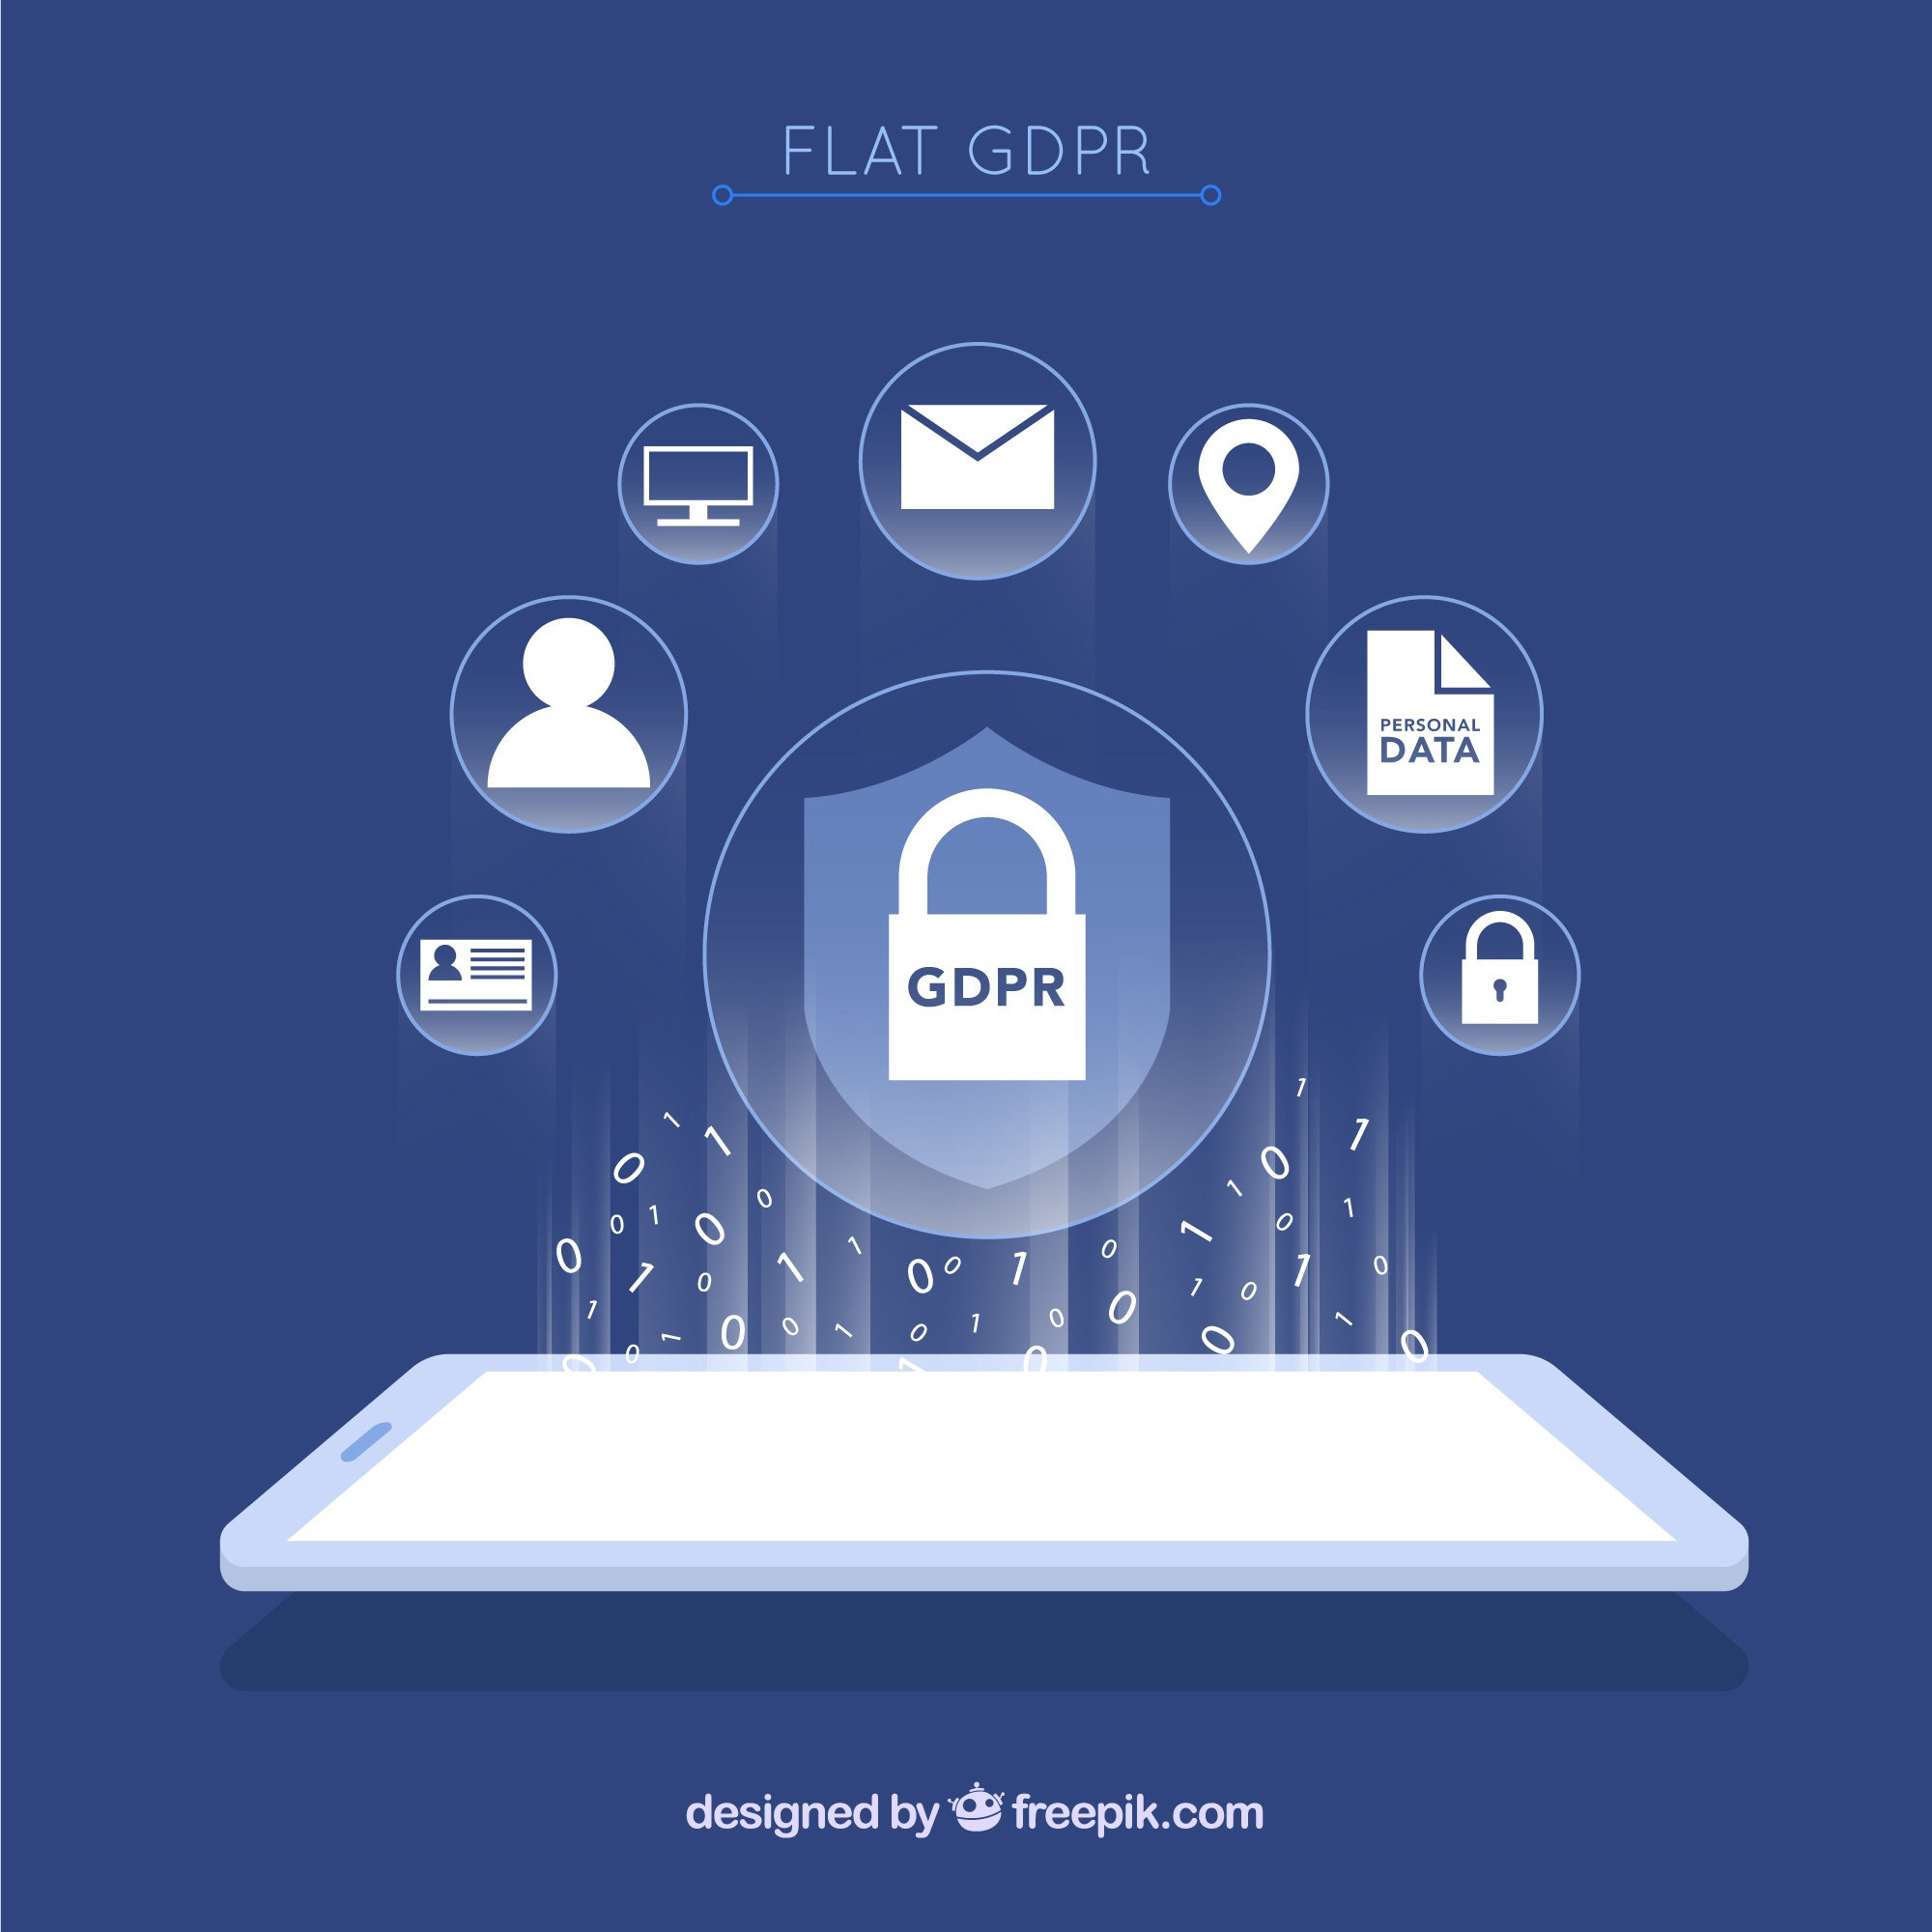 New gdpr concept with flat design